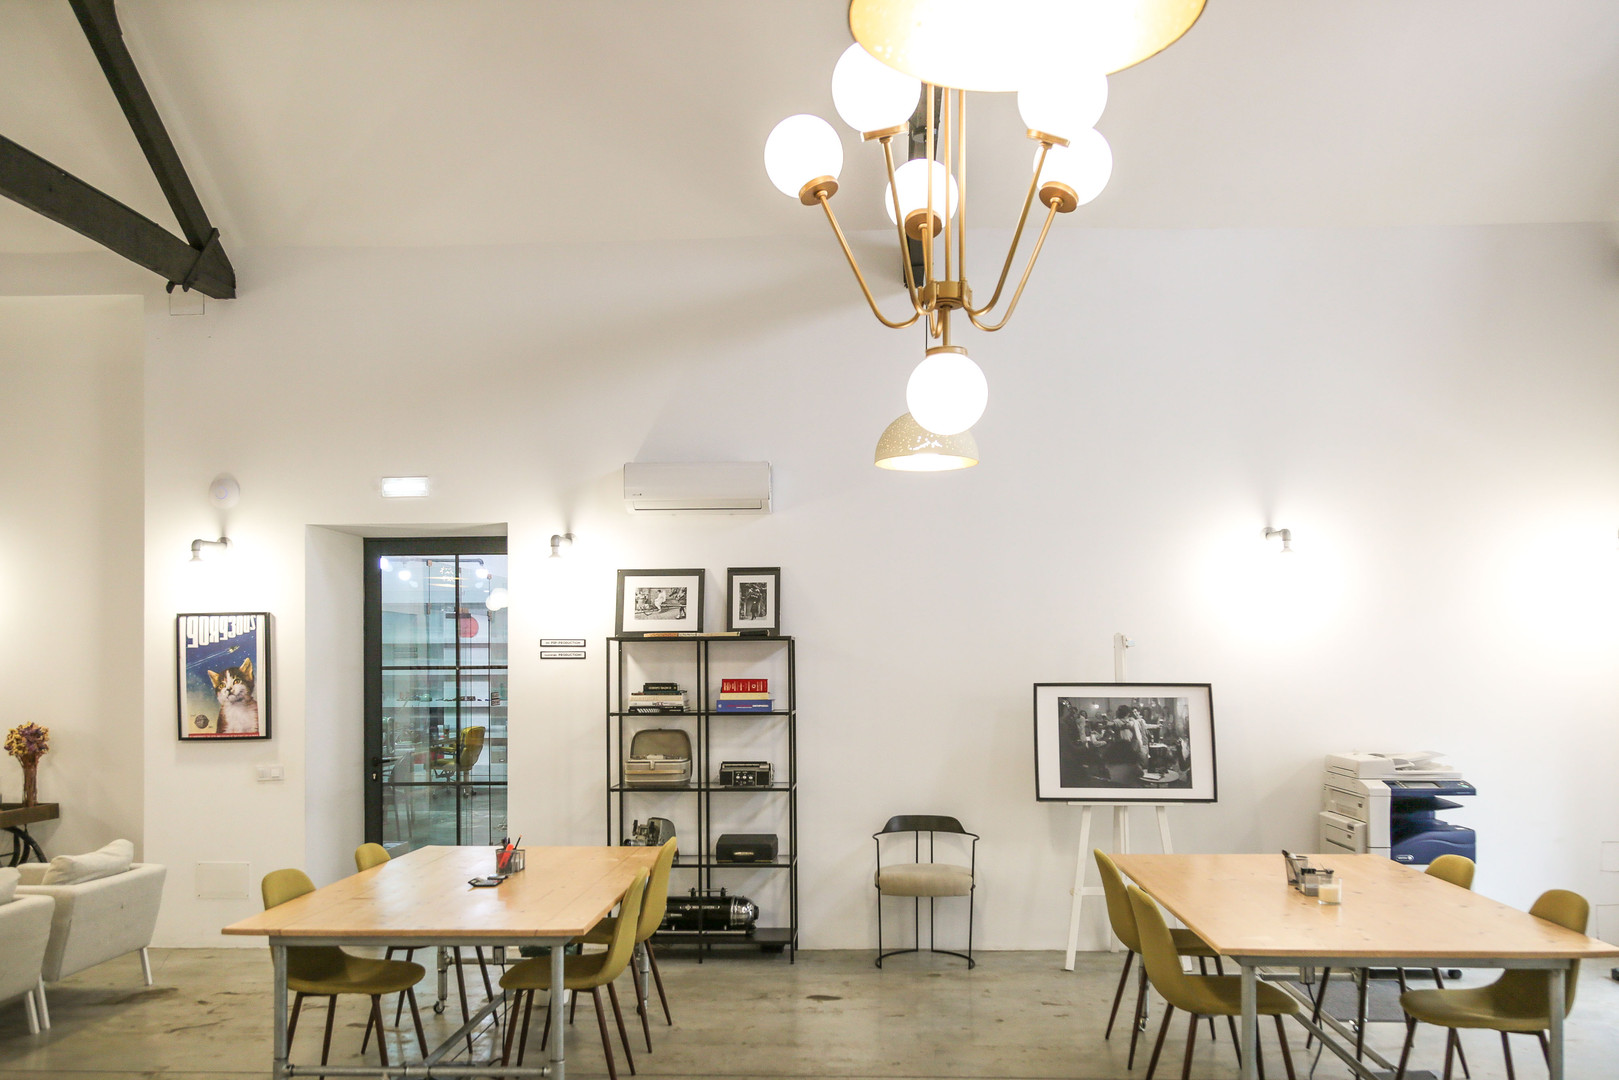 Coworking Space Near Me